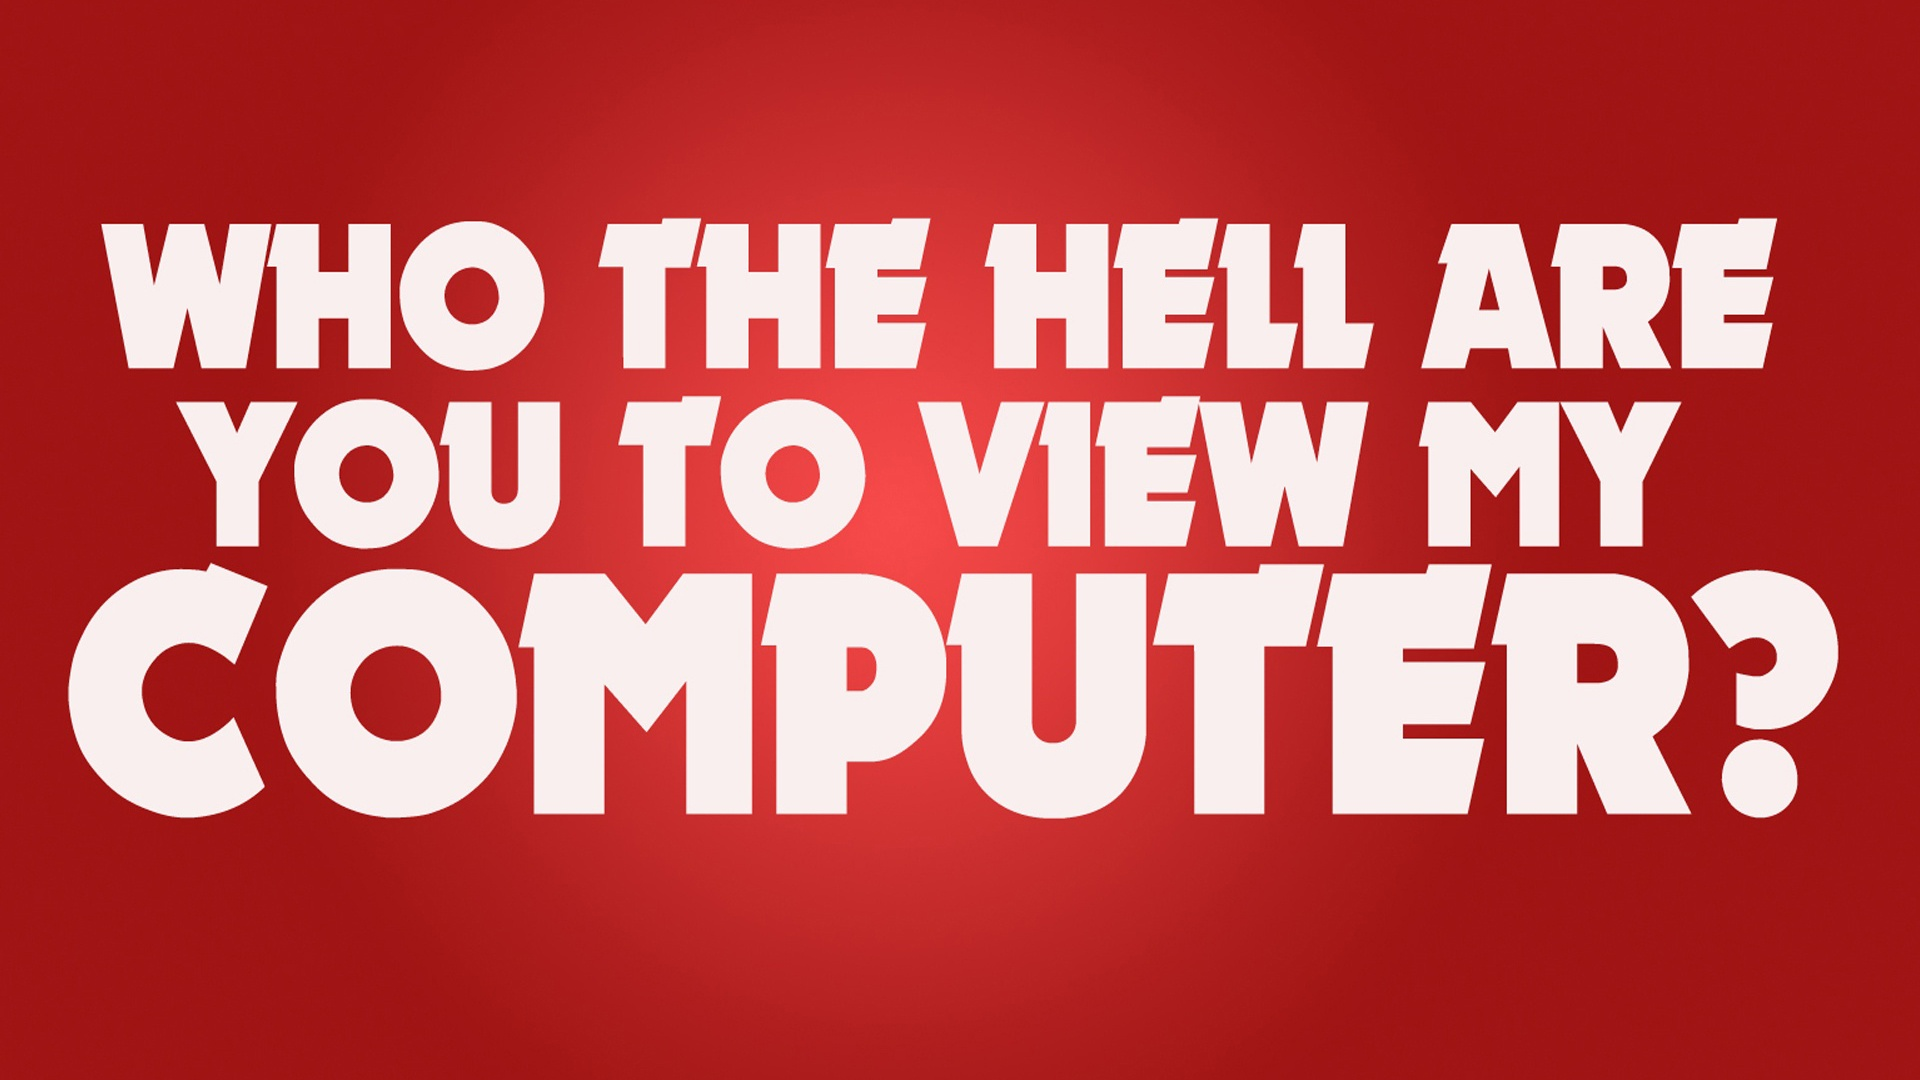 Dont view my computer